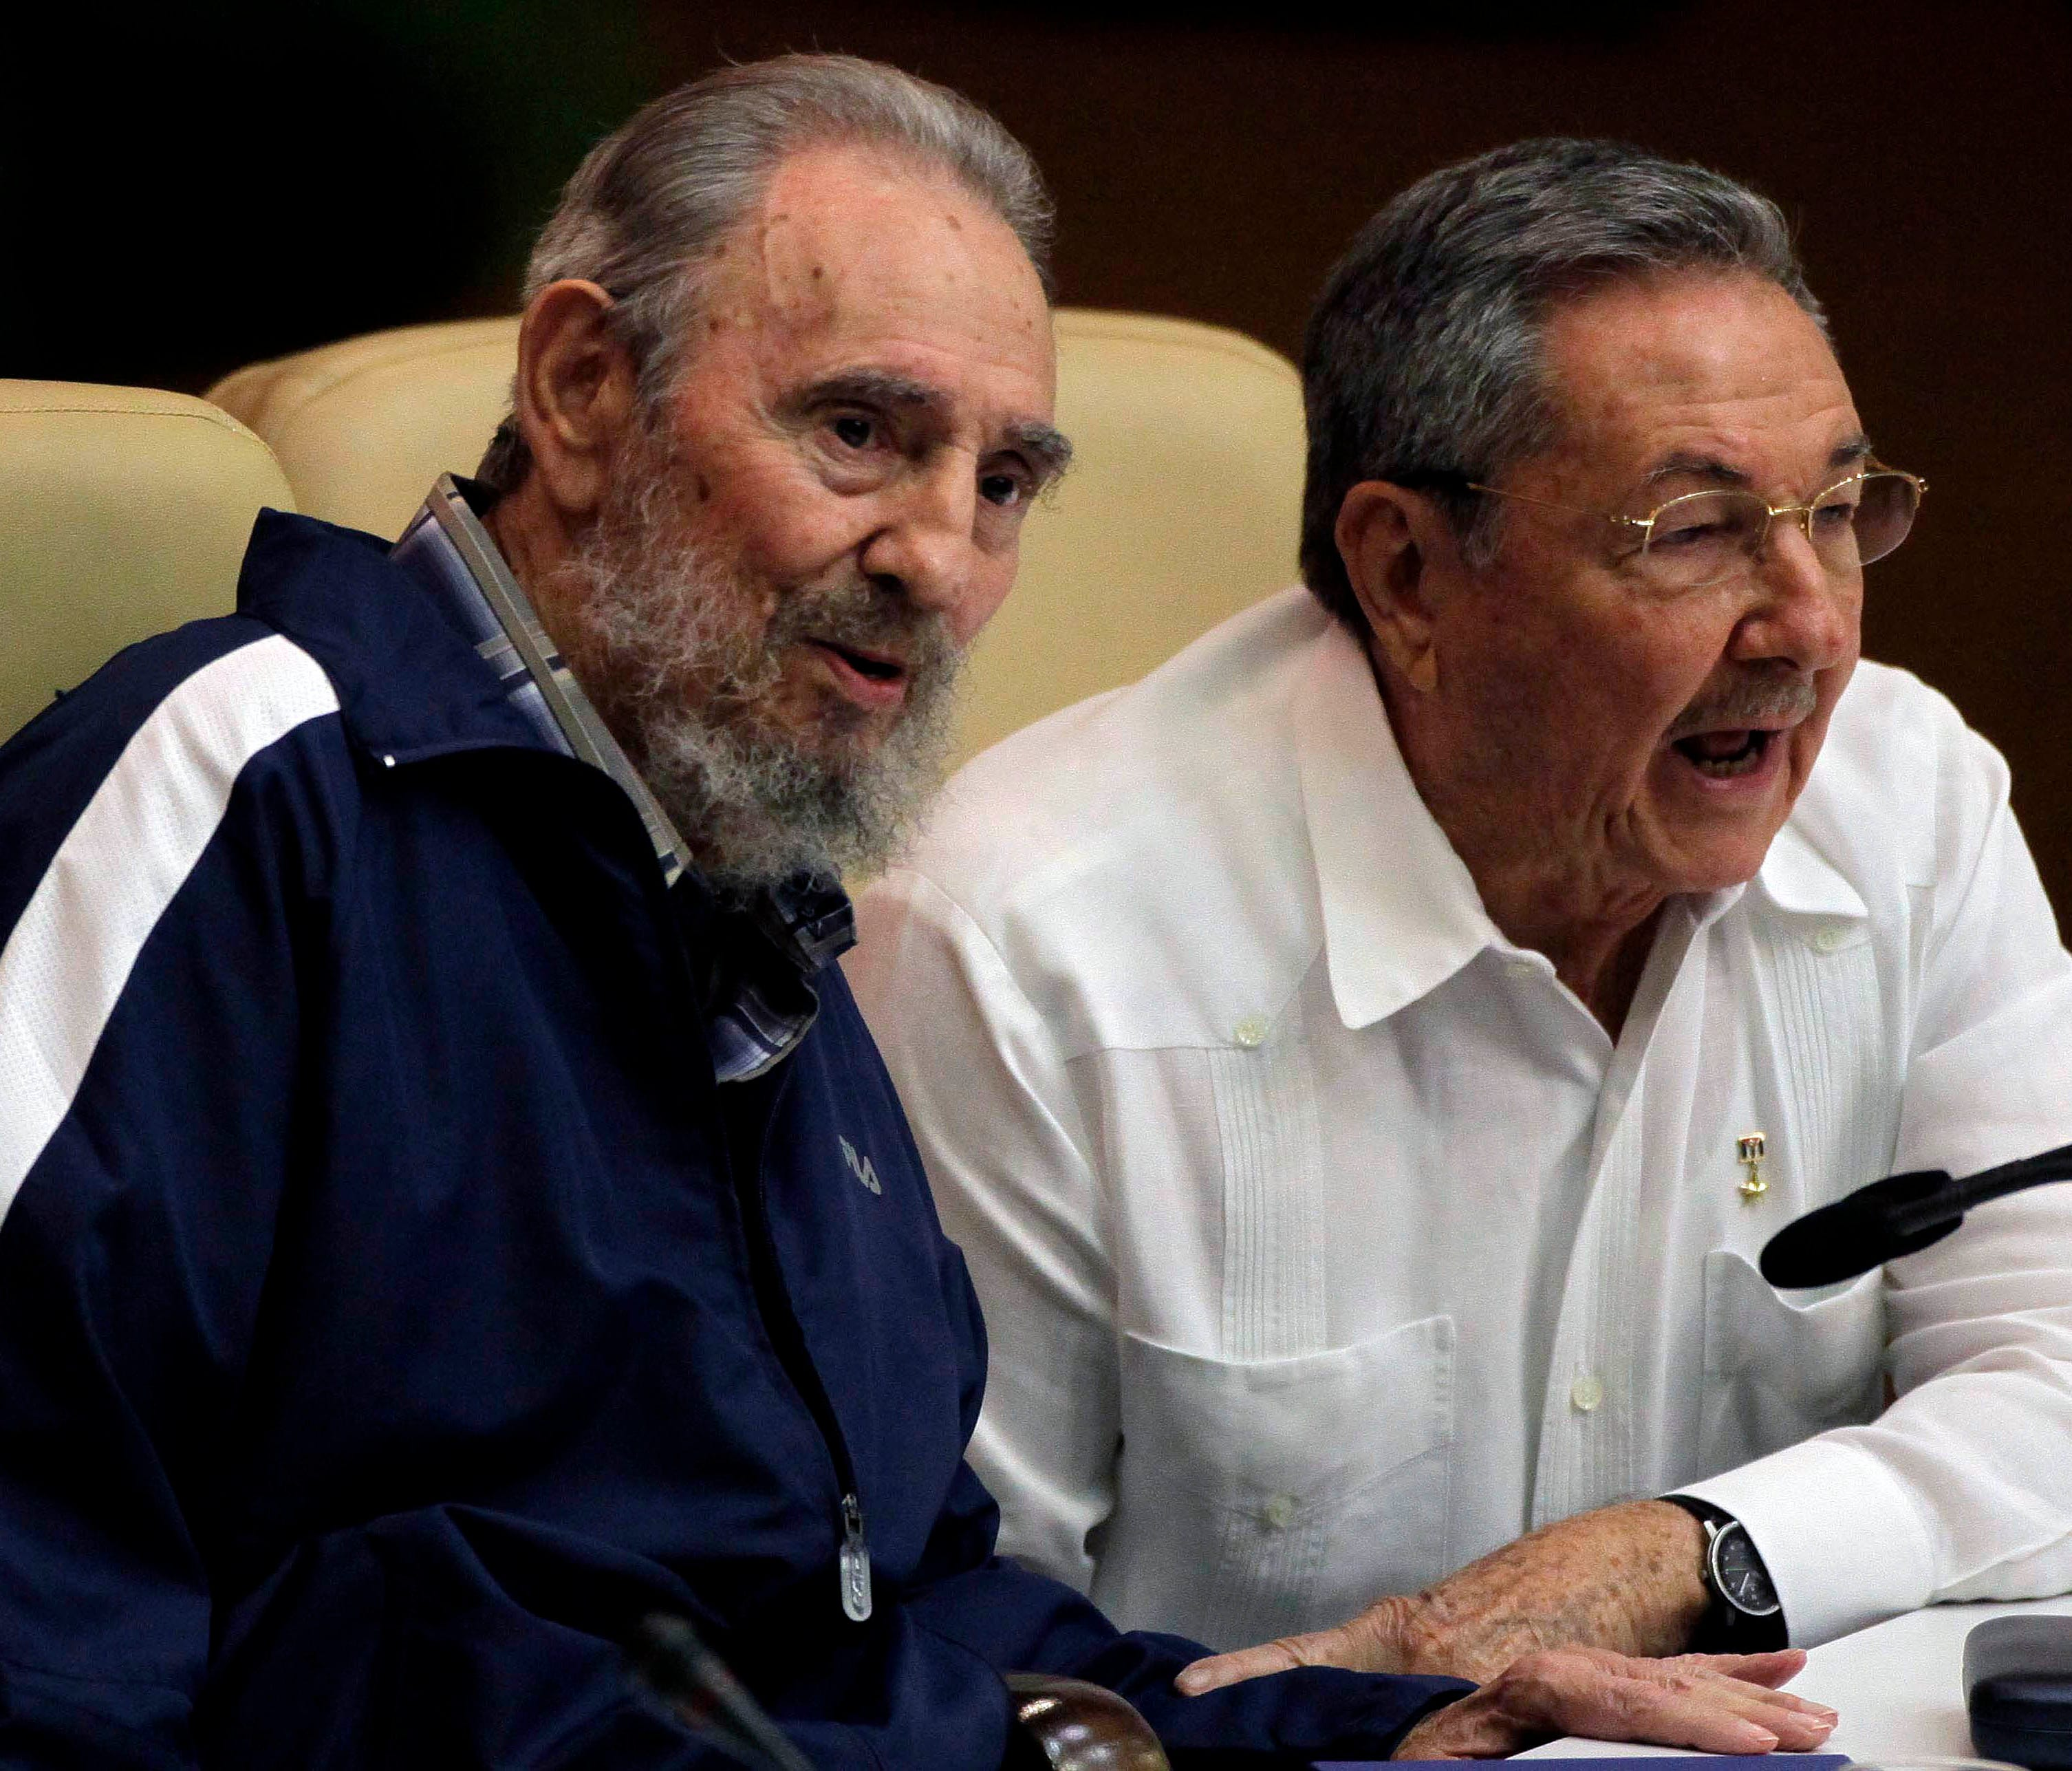 Cuba is expected to name a new president on April 19, 2018, which would mark the first time a Castro is not head of state in nearly 60 years. In this 2011 file photo, former president Fidel Castro, left,  and current President Raul Castro attend the